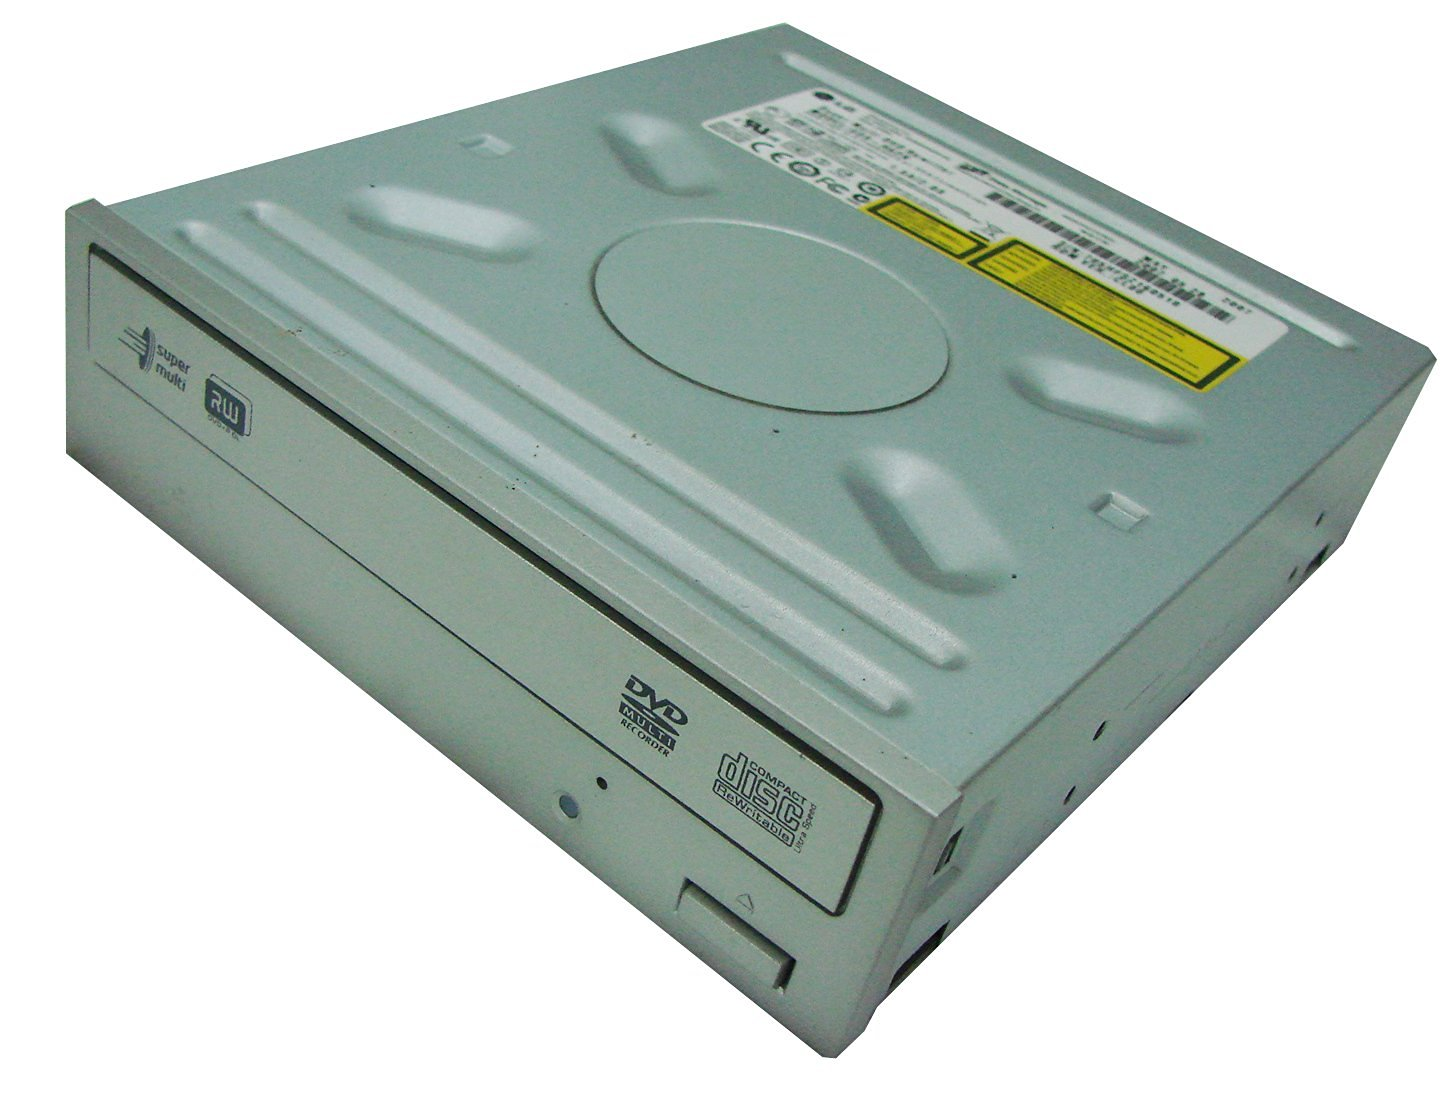 DVDRAM GSA 4166B DRIVER DOWNLOAD